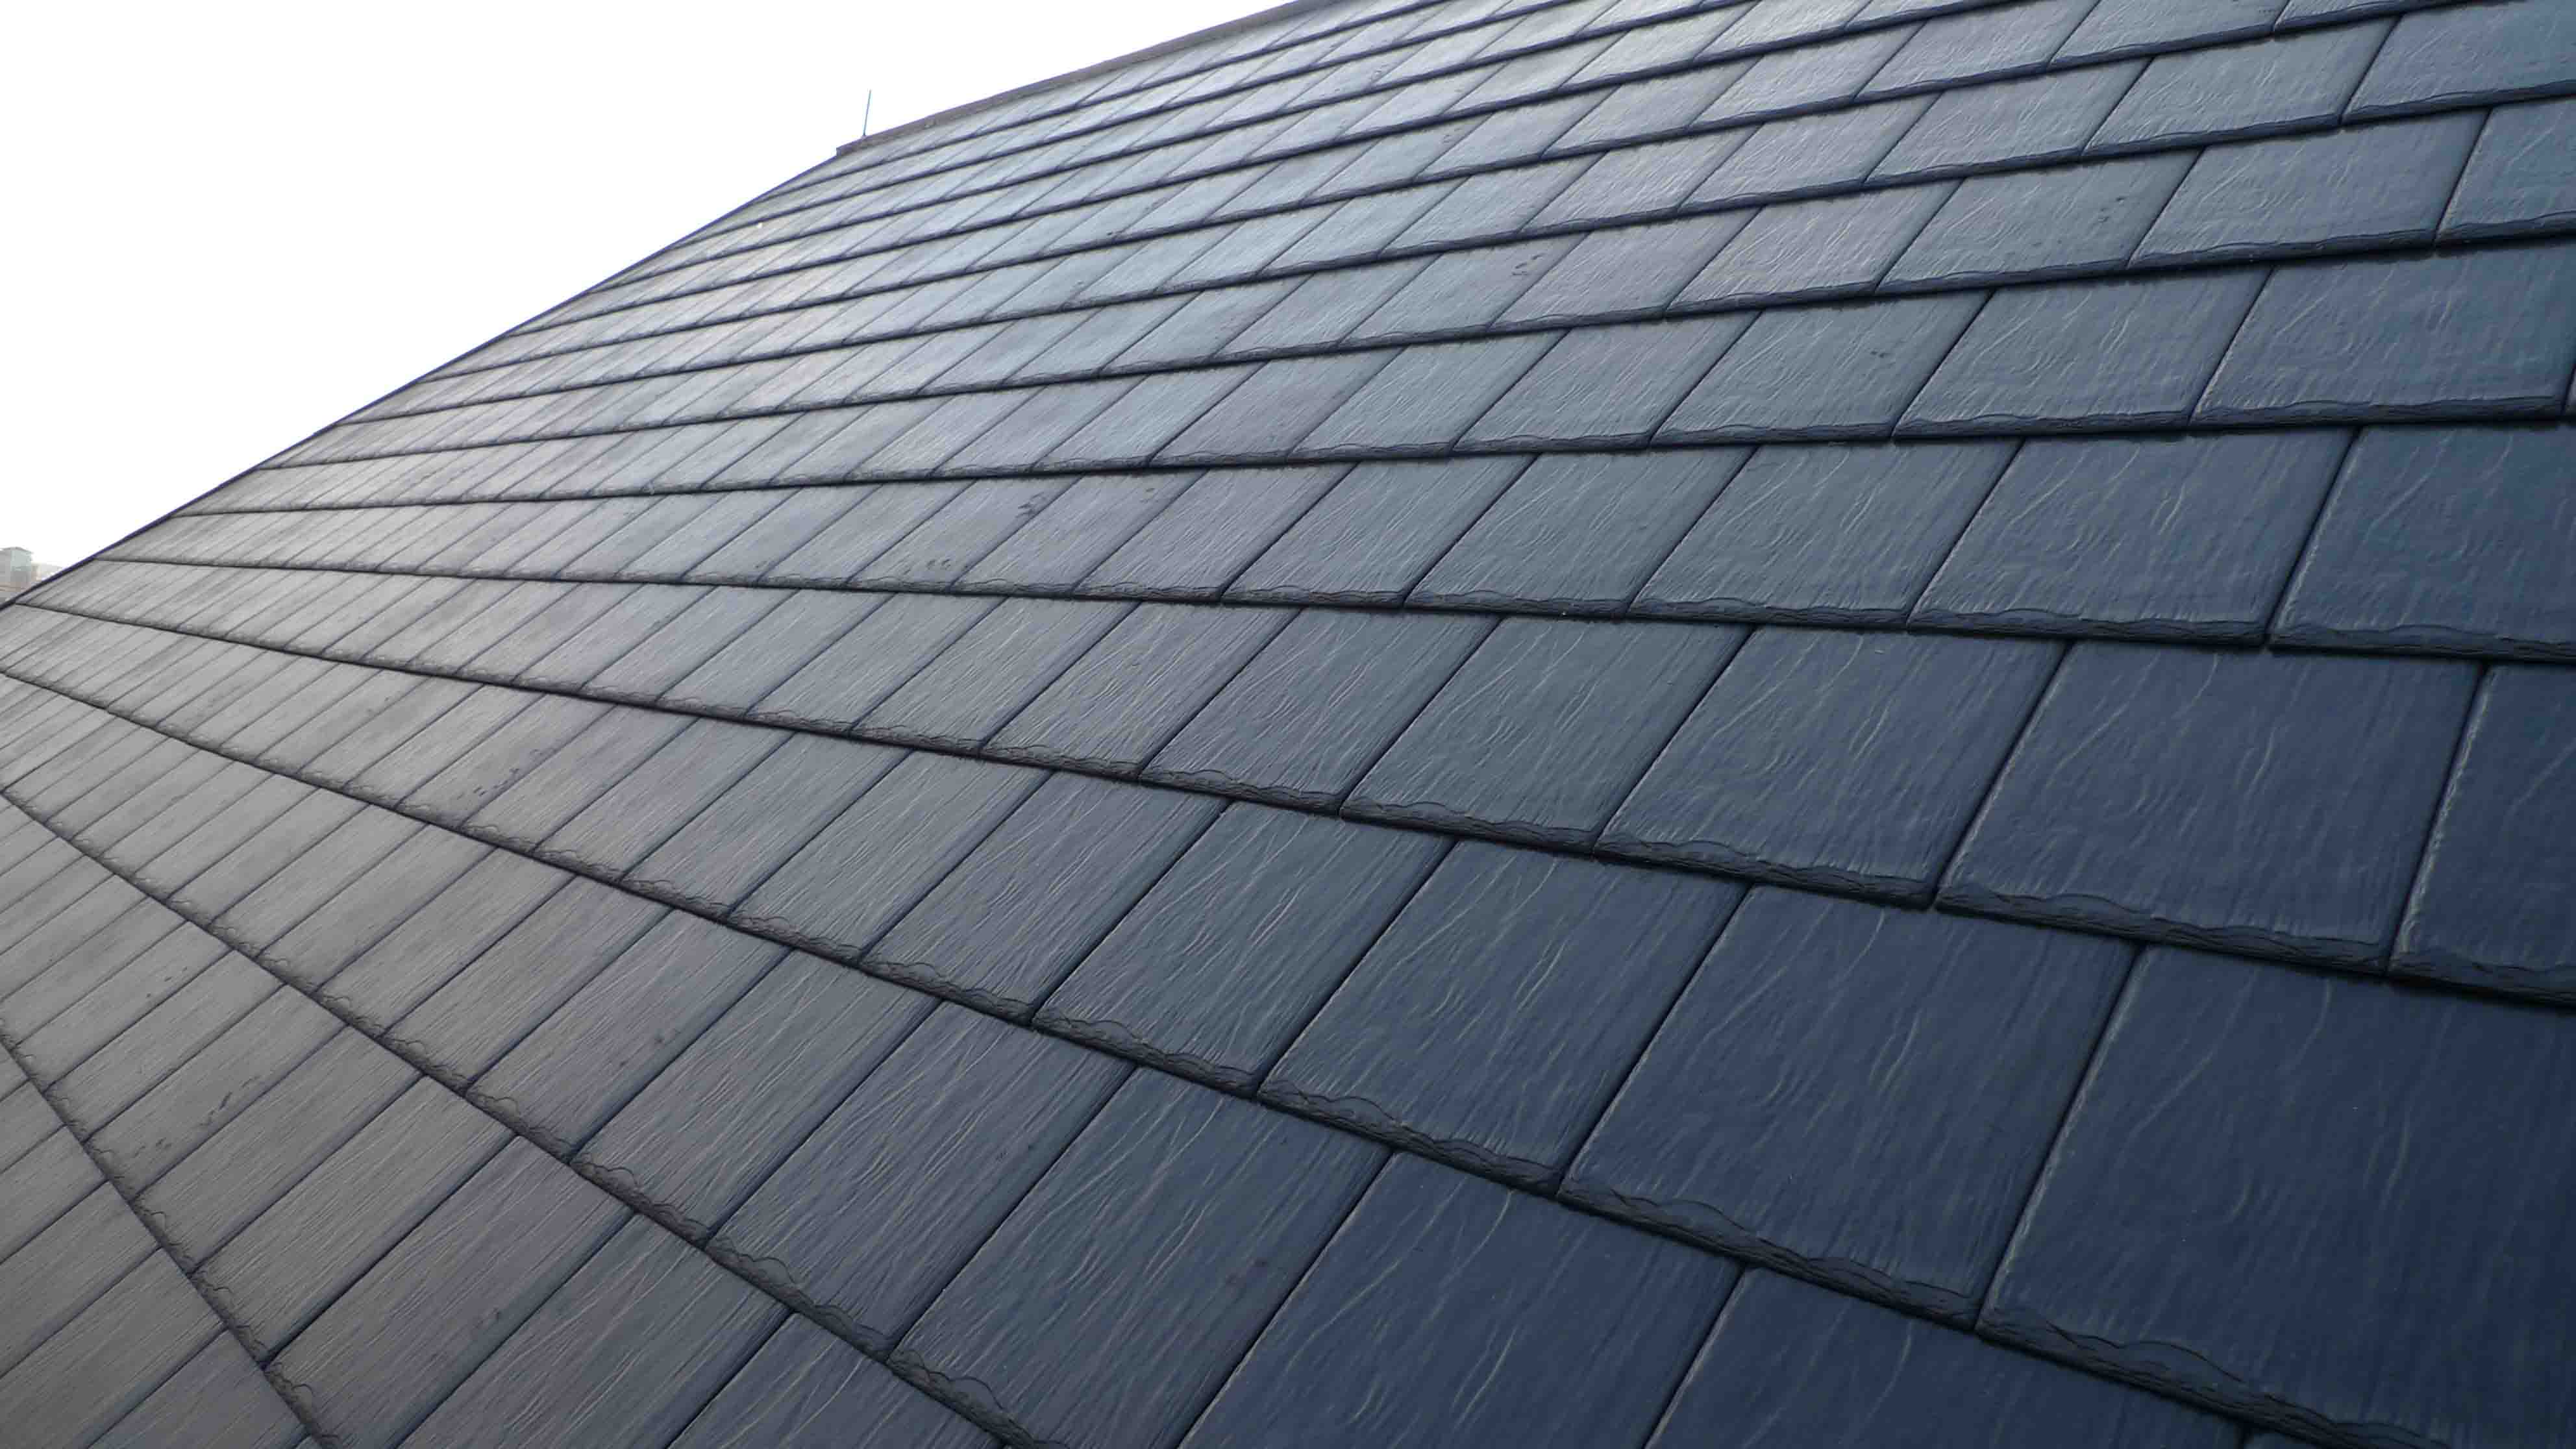 Steel Slate Roof Tiles Texas Metal Roofing